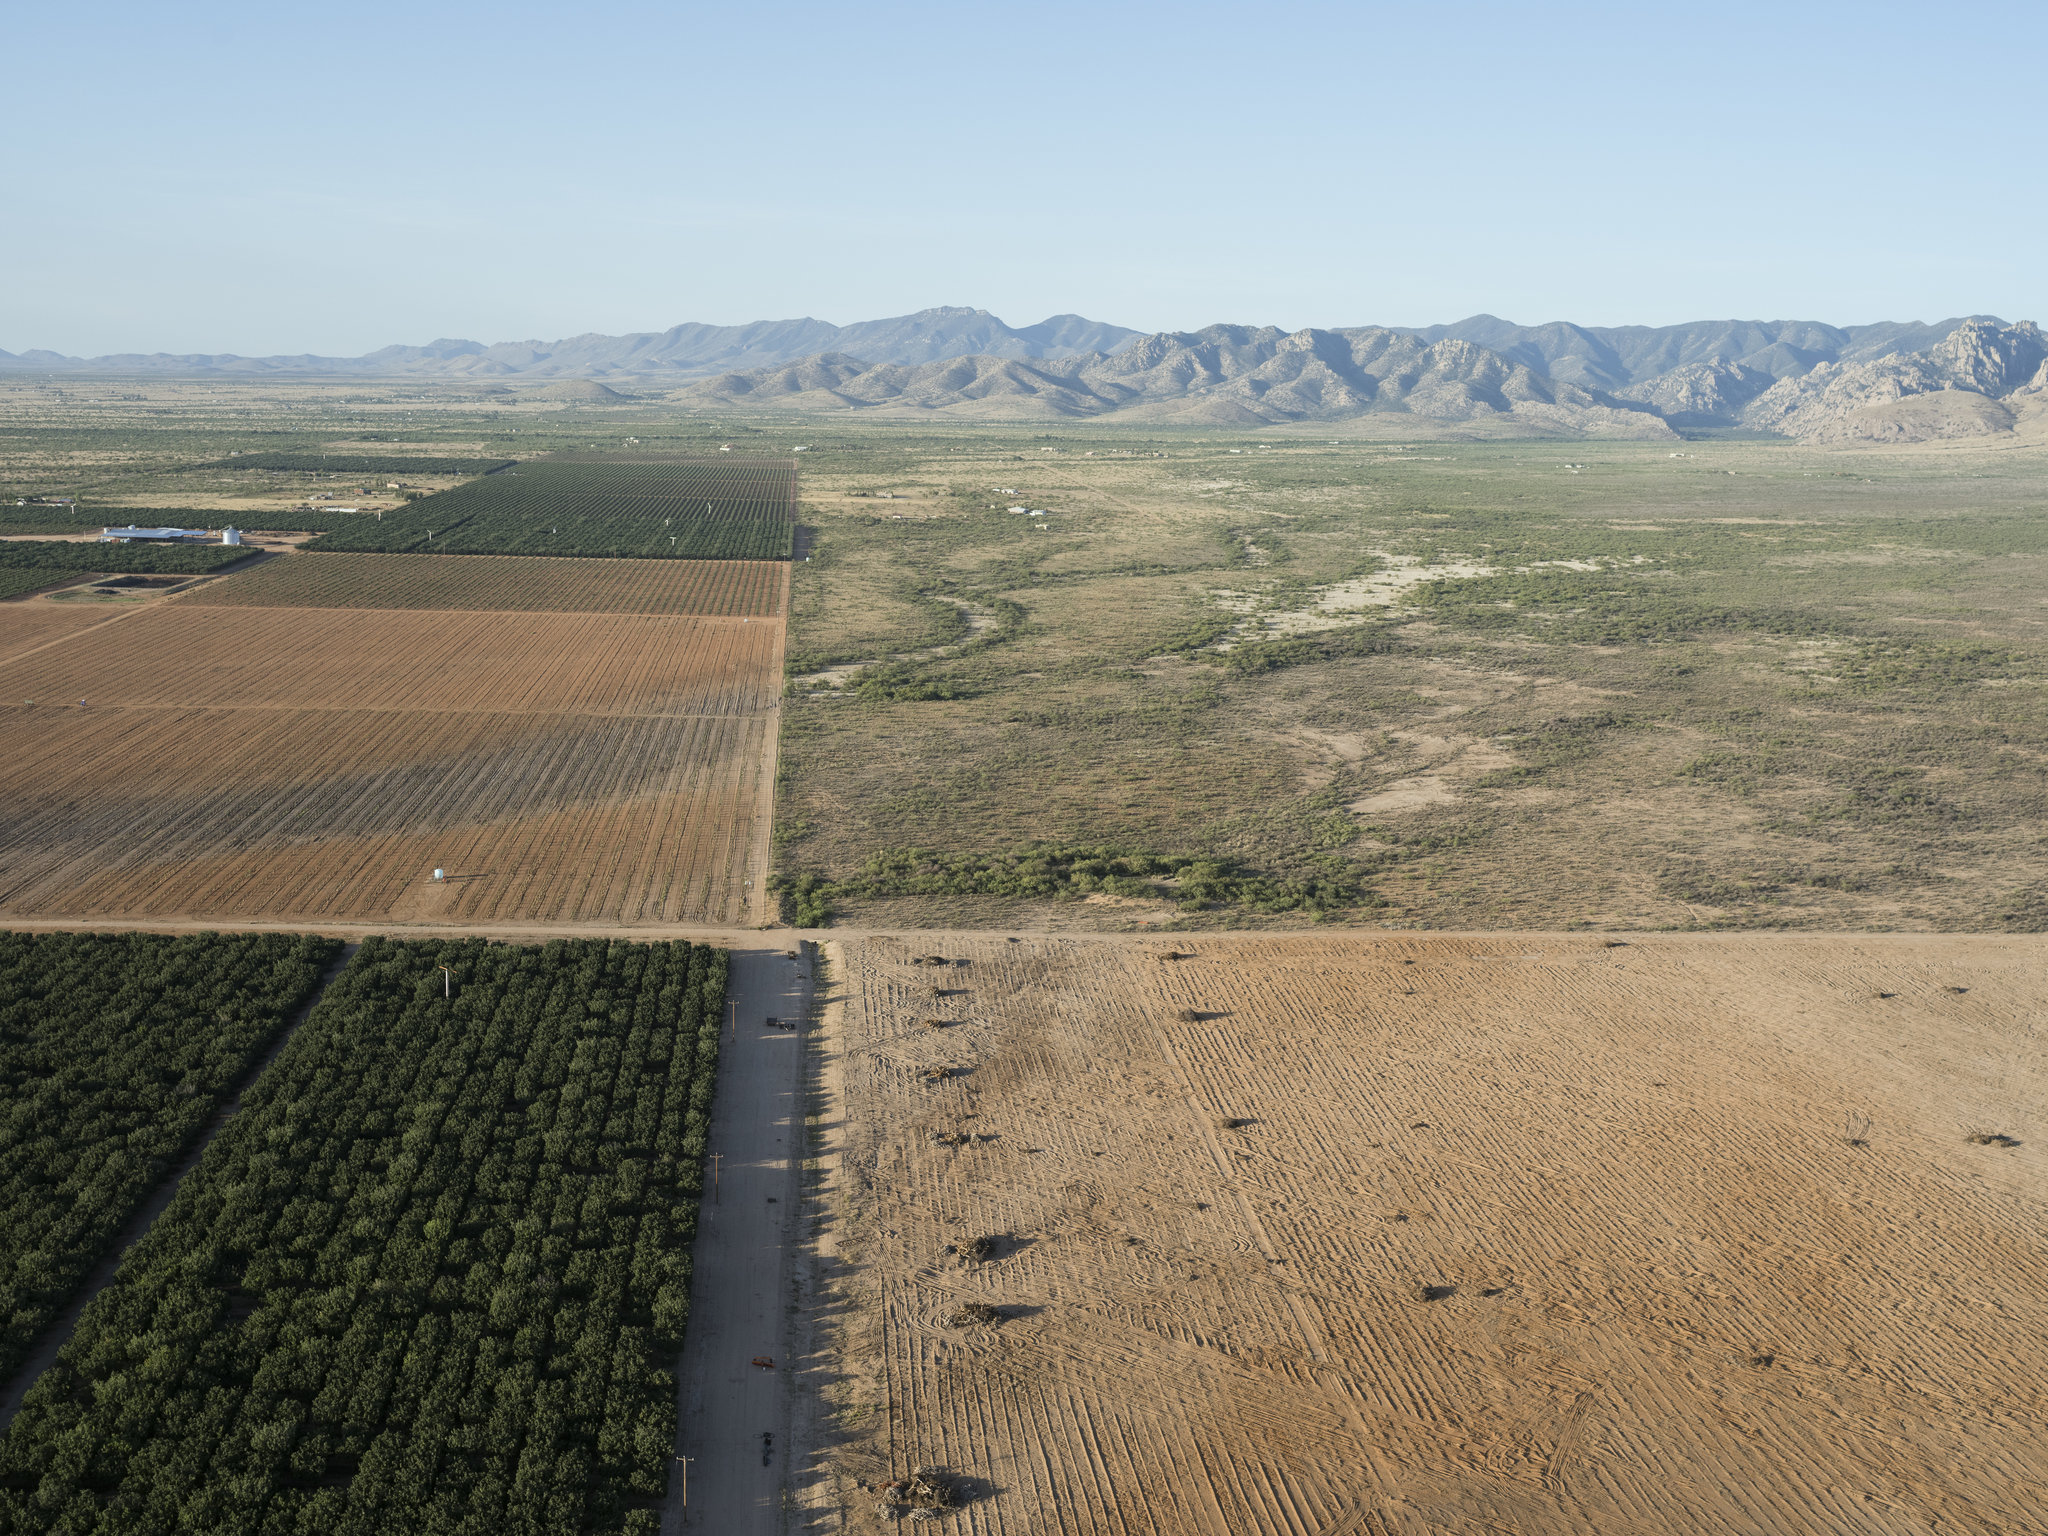 Farmland in the Sulphur Springs Valley of Arizona. (Credit: Lucas Foglia for The New York Times)